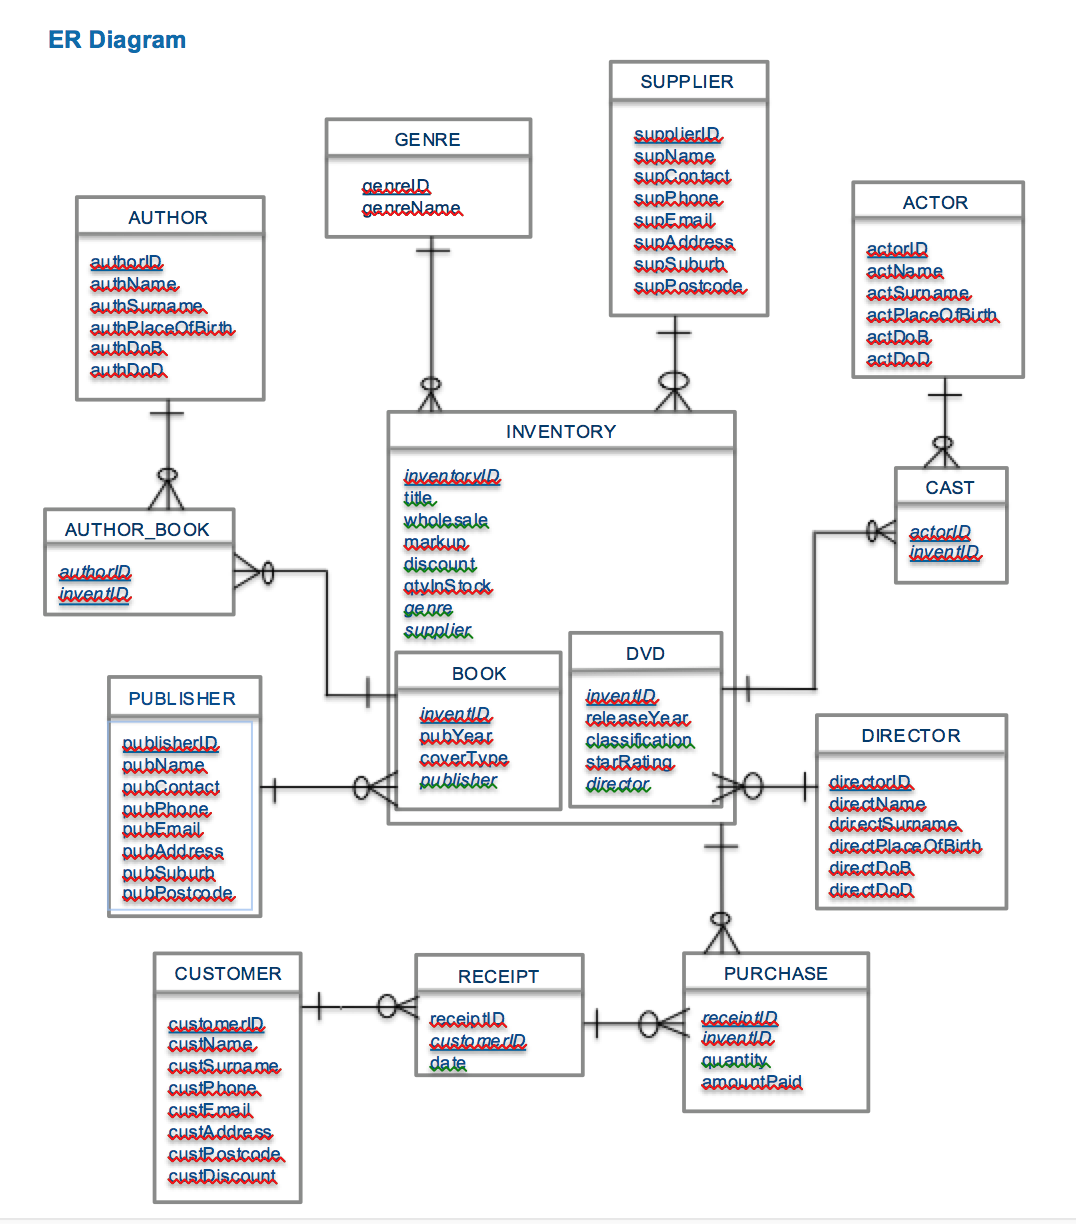 How Many Tables Will The Relational Schema Have For This Er